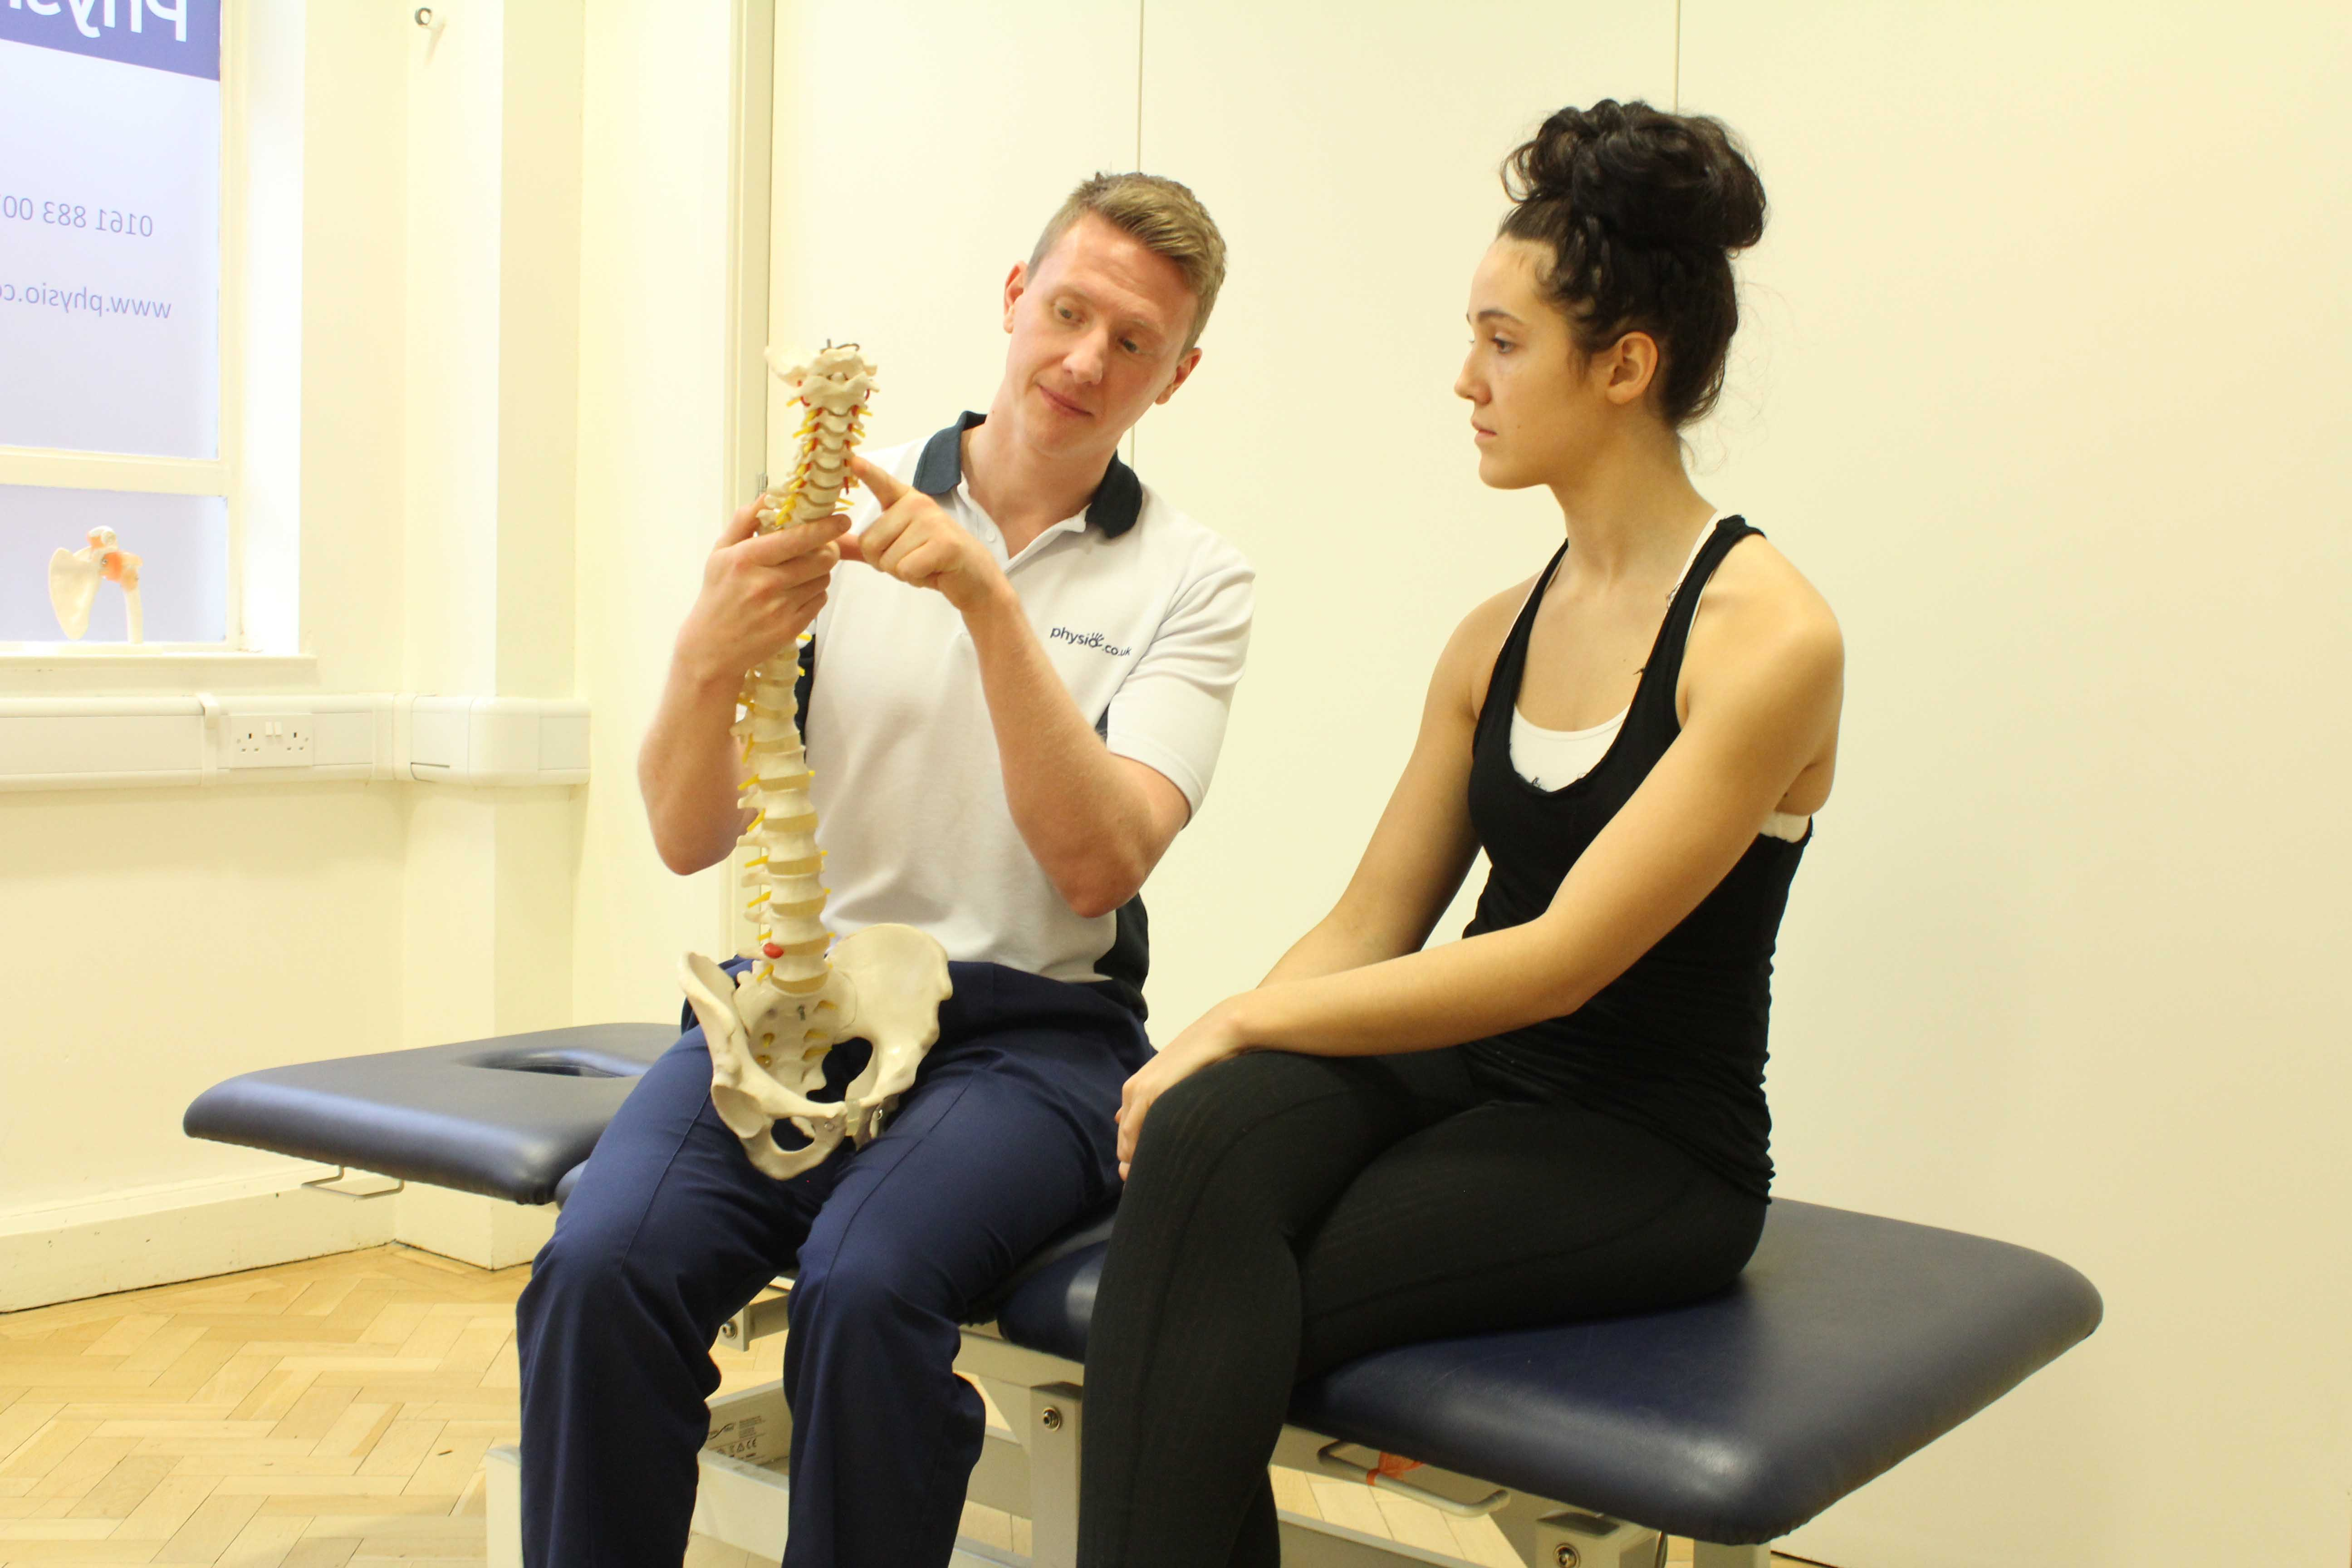 Core stability and back toning exercises supervised by an experienced physiotherapist